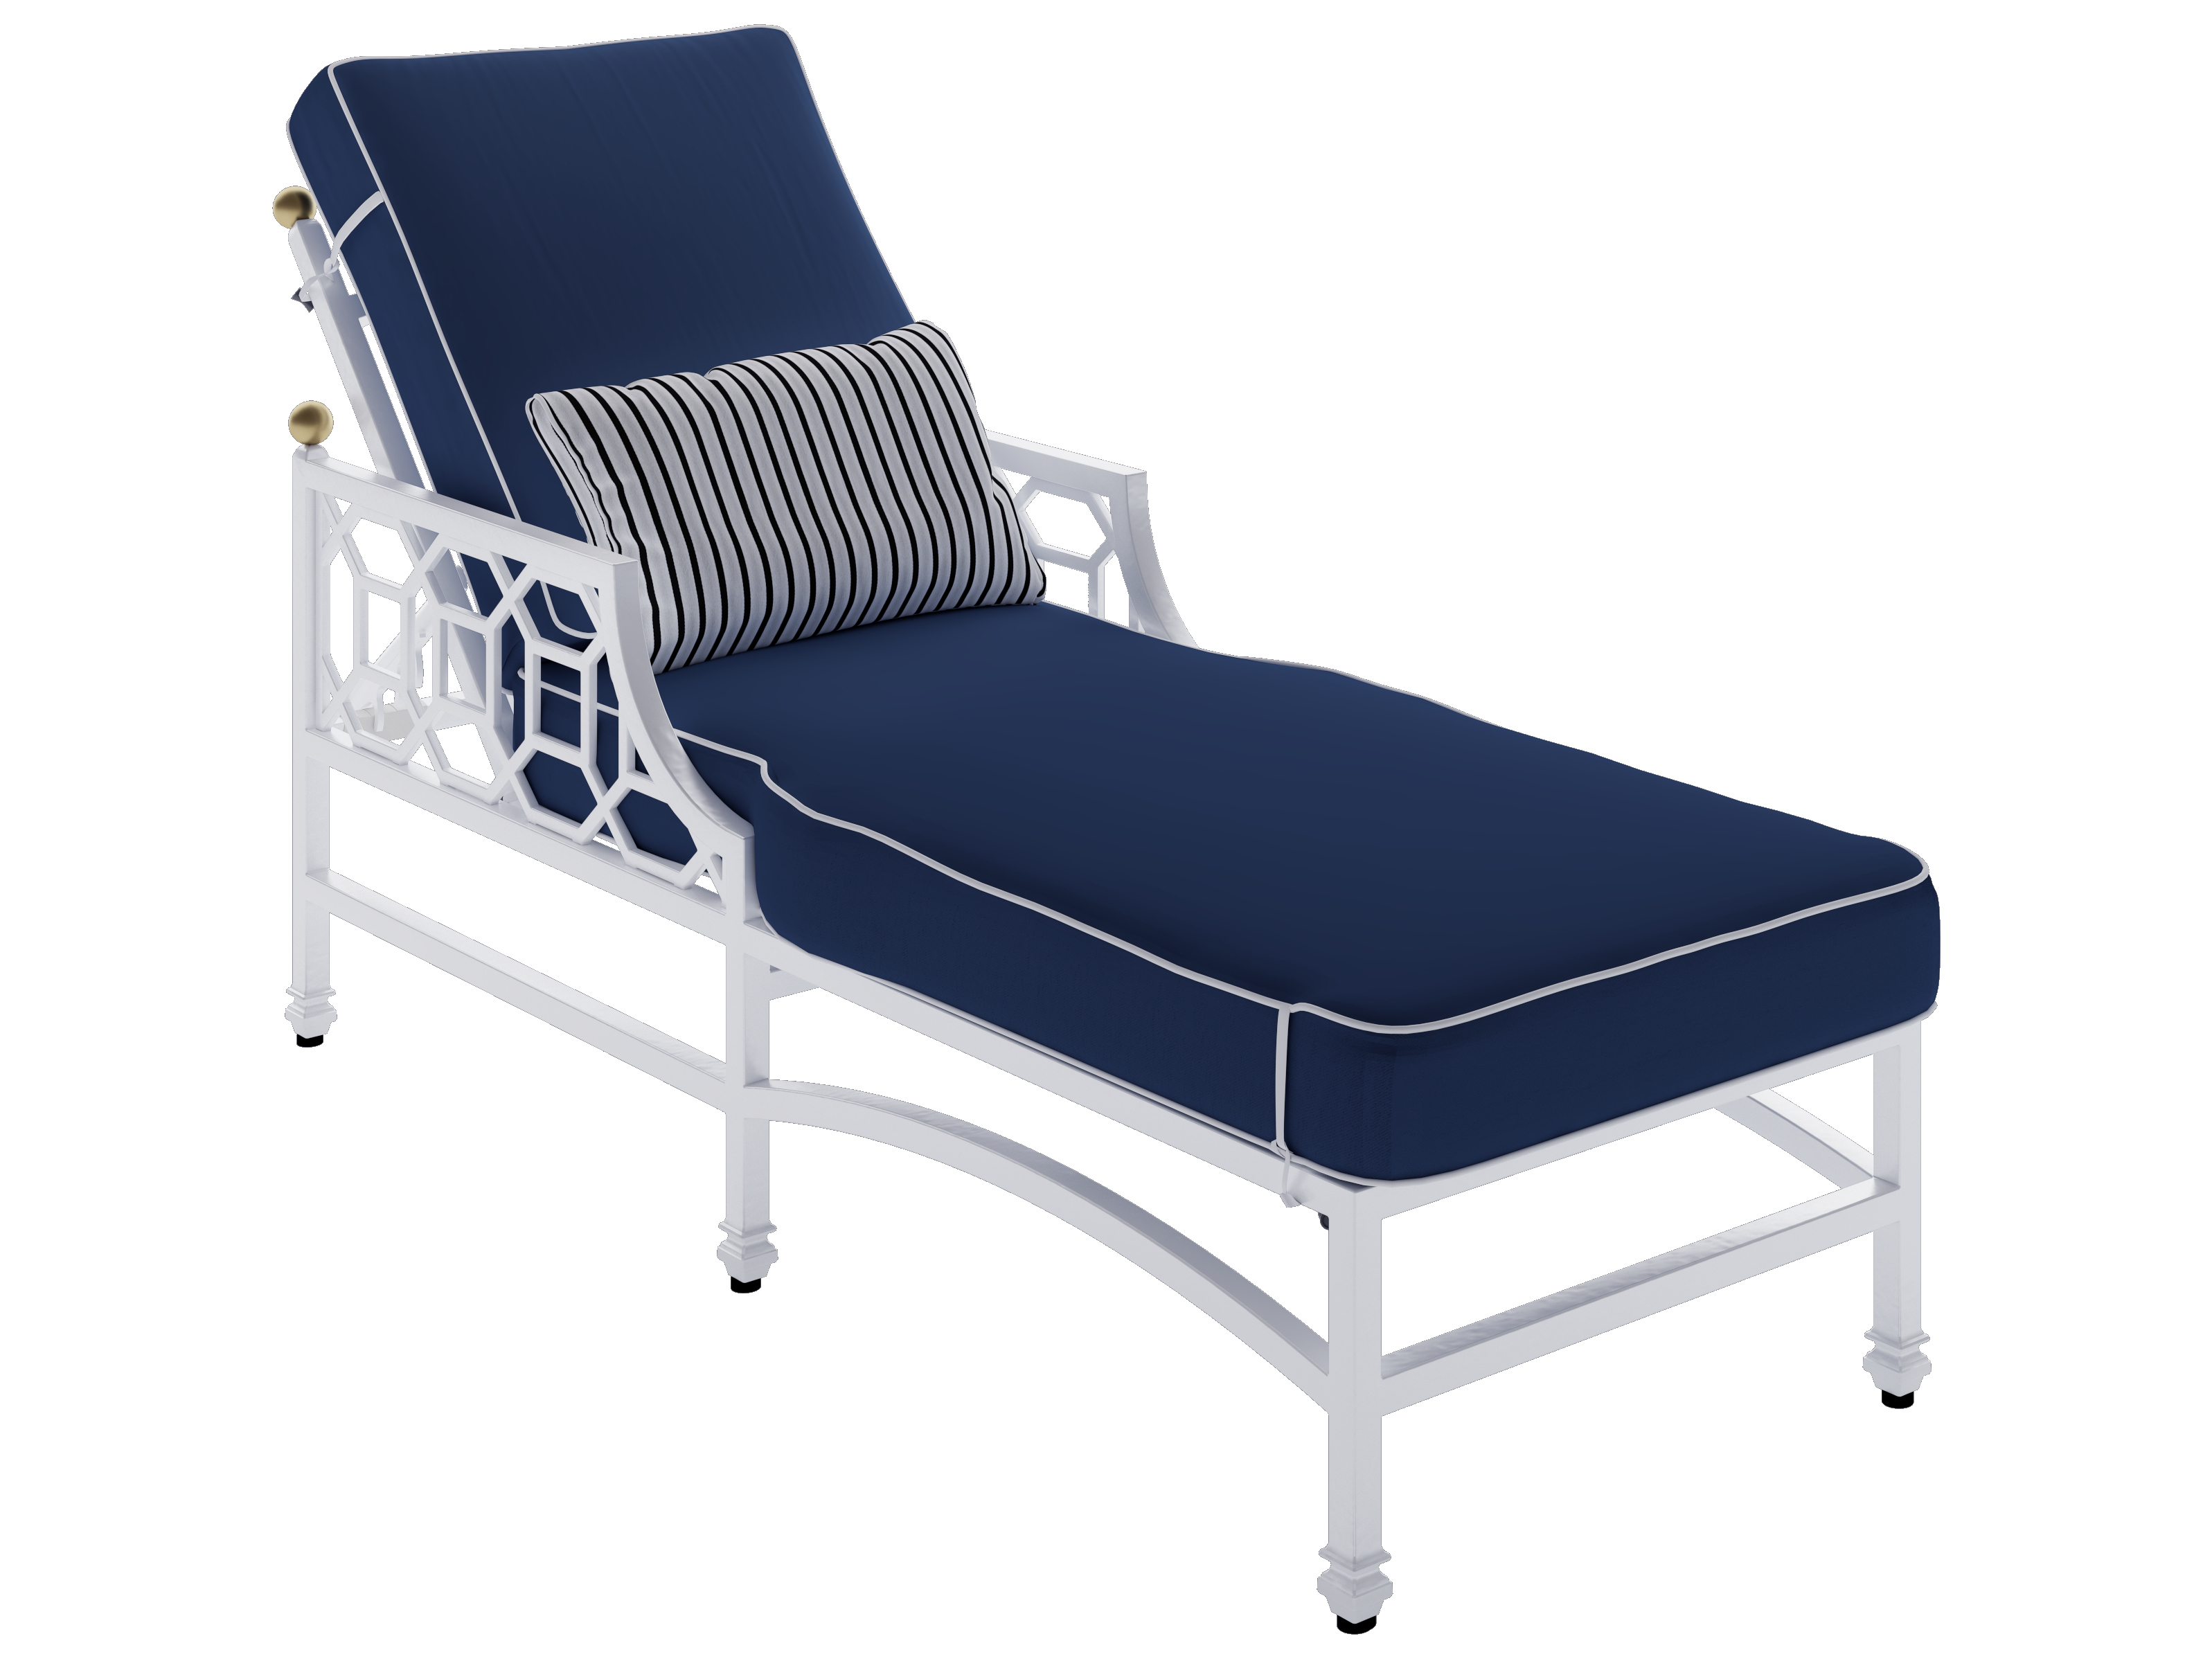 Castelle barclay cushion aluminum adjustable chaise lounge for Aluminum chaise lounge with wheels